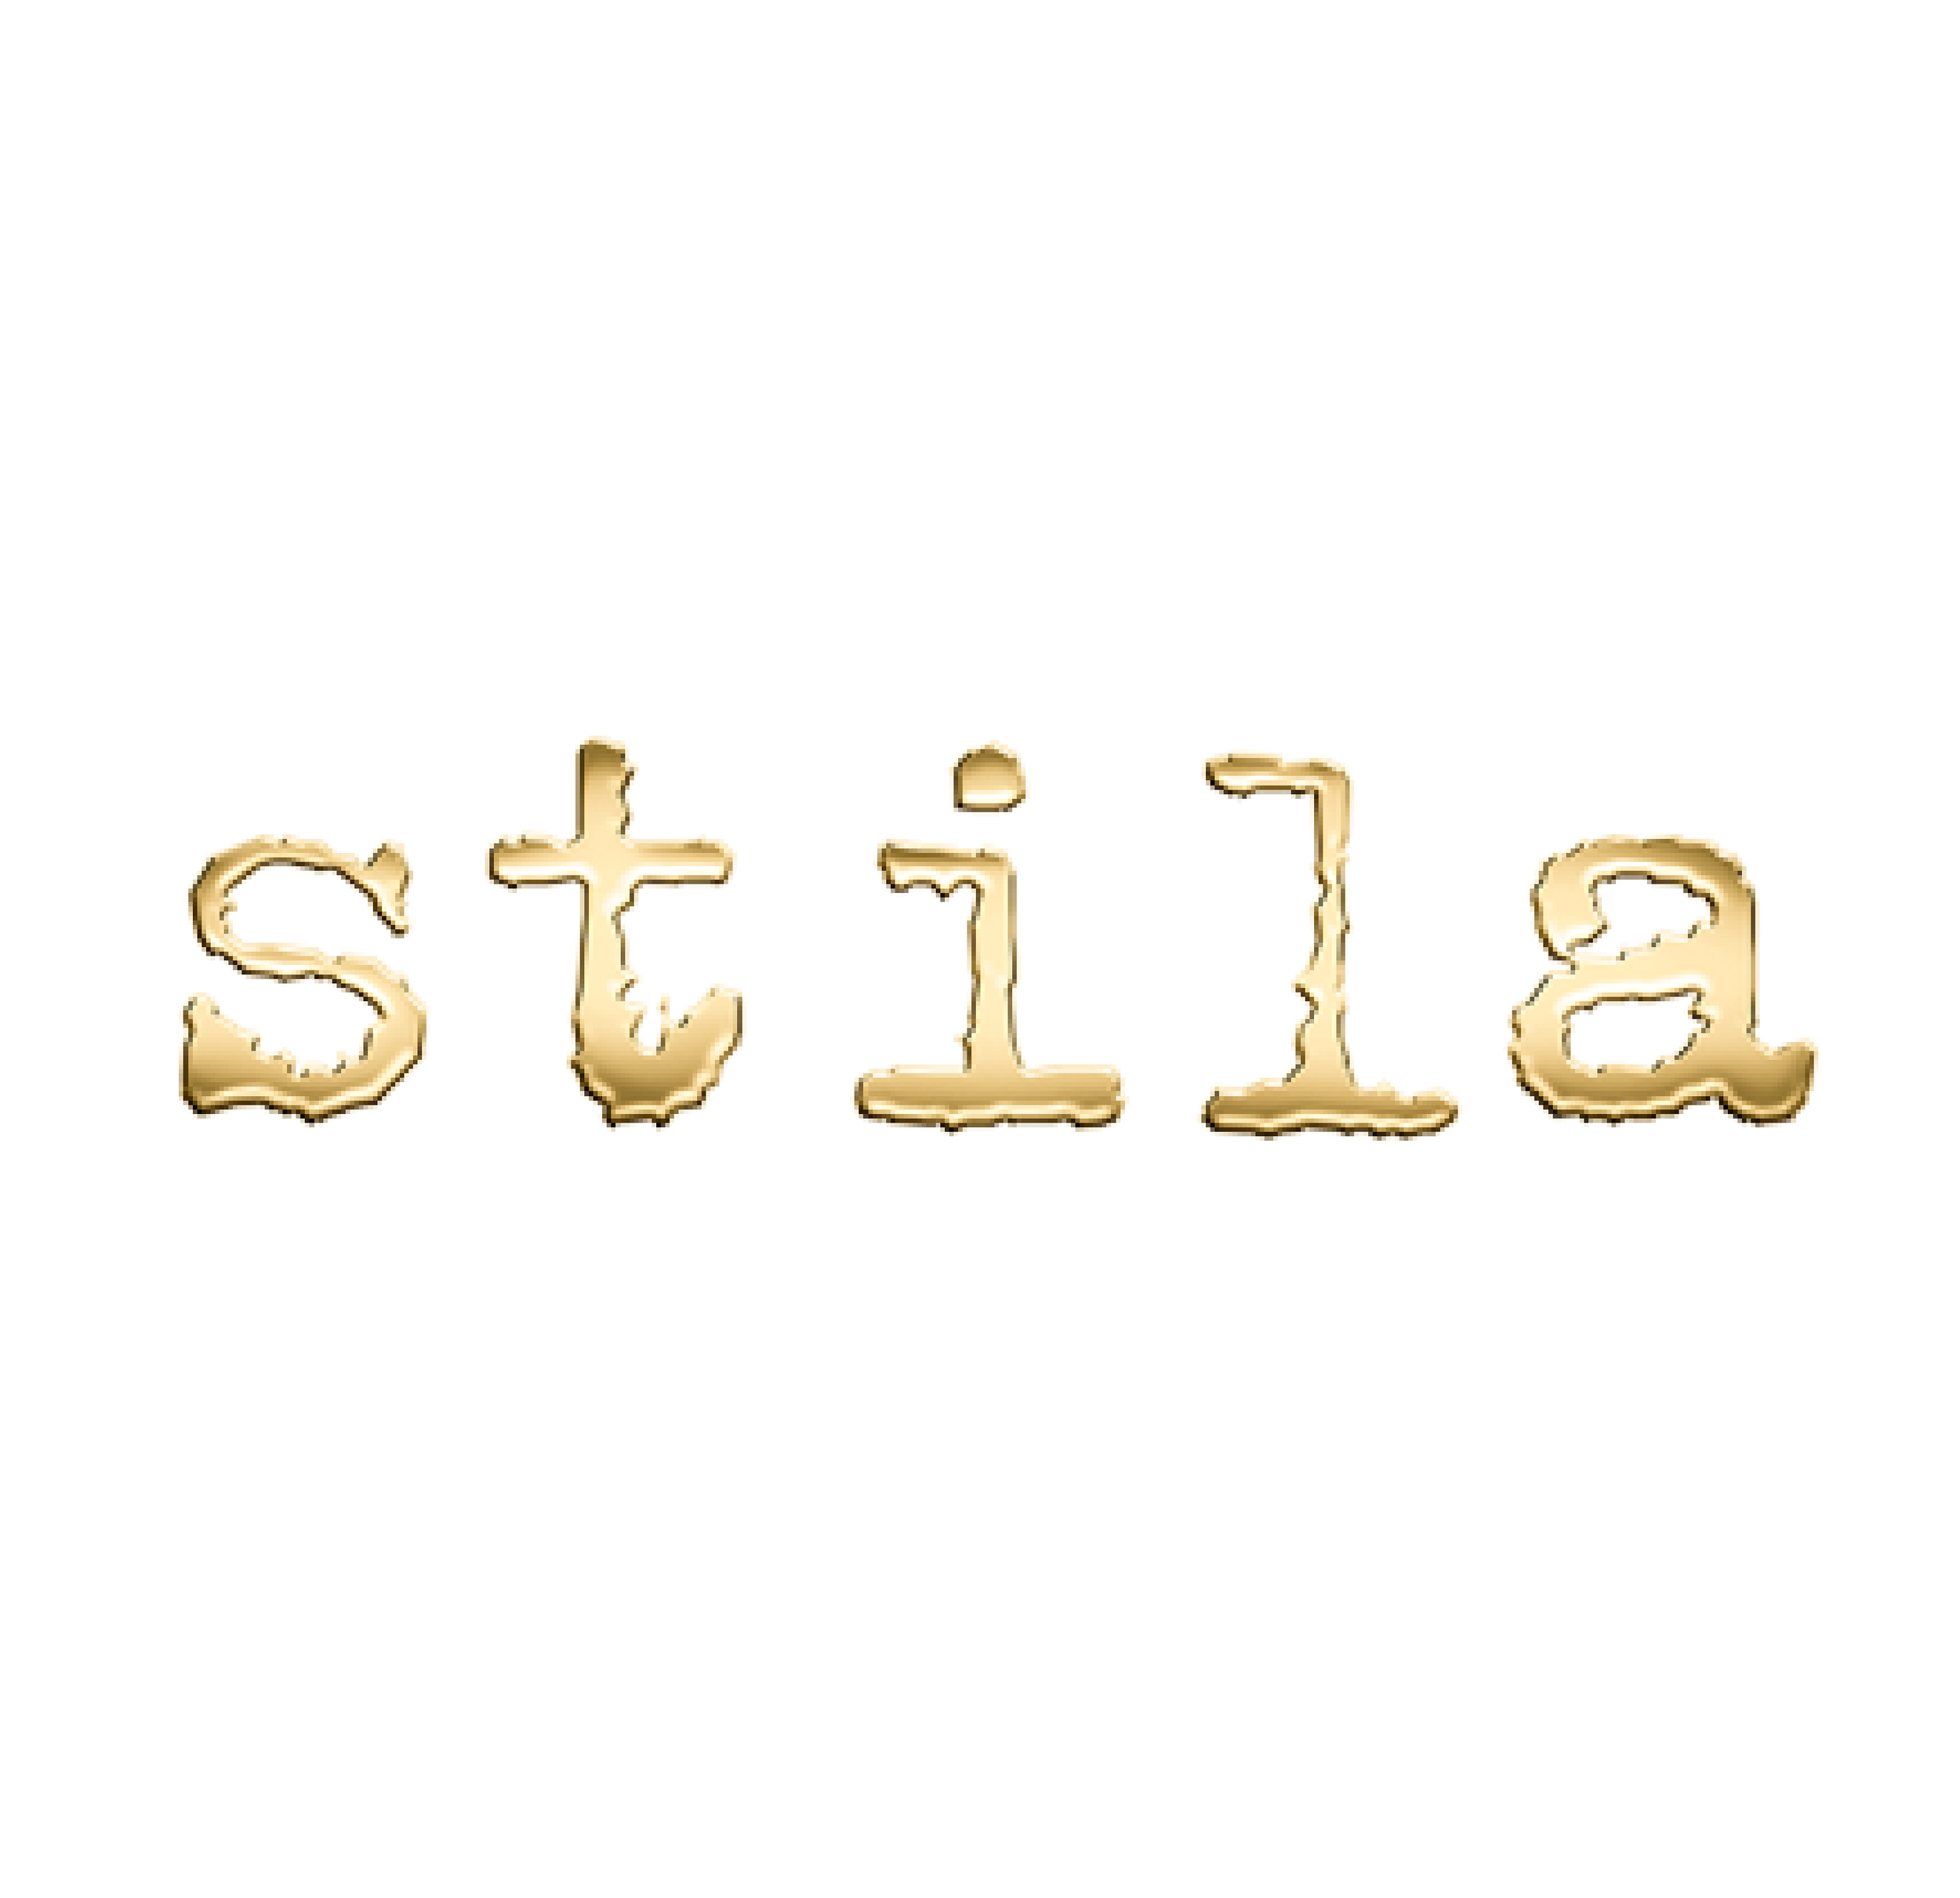 ProjectExportTemplate_Stila-02.png